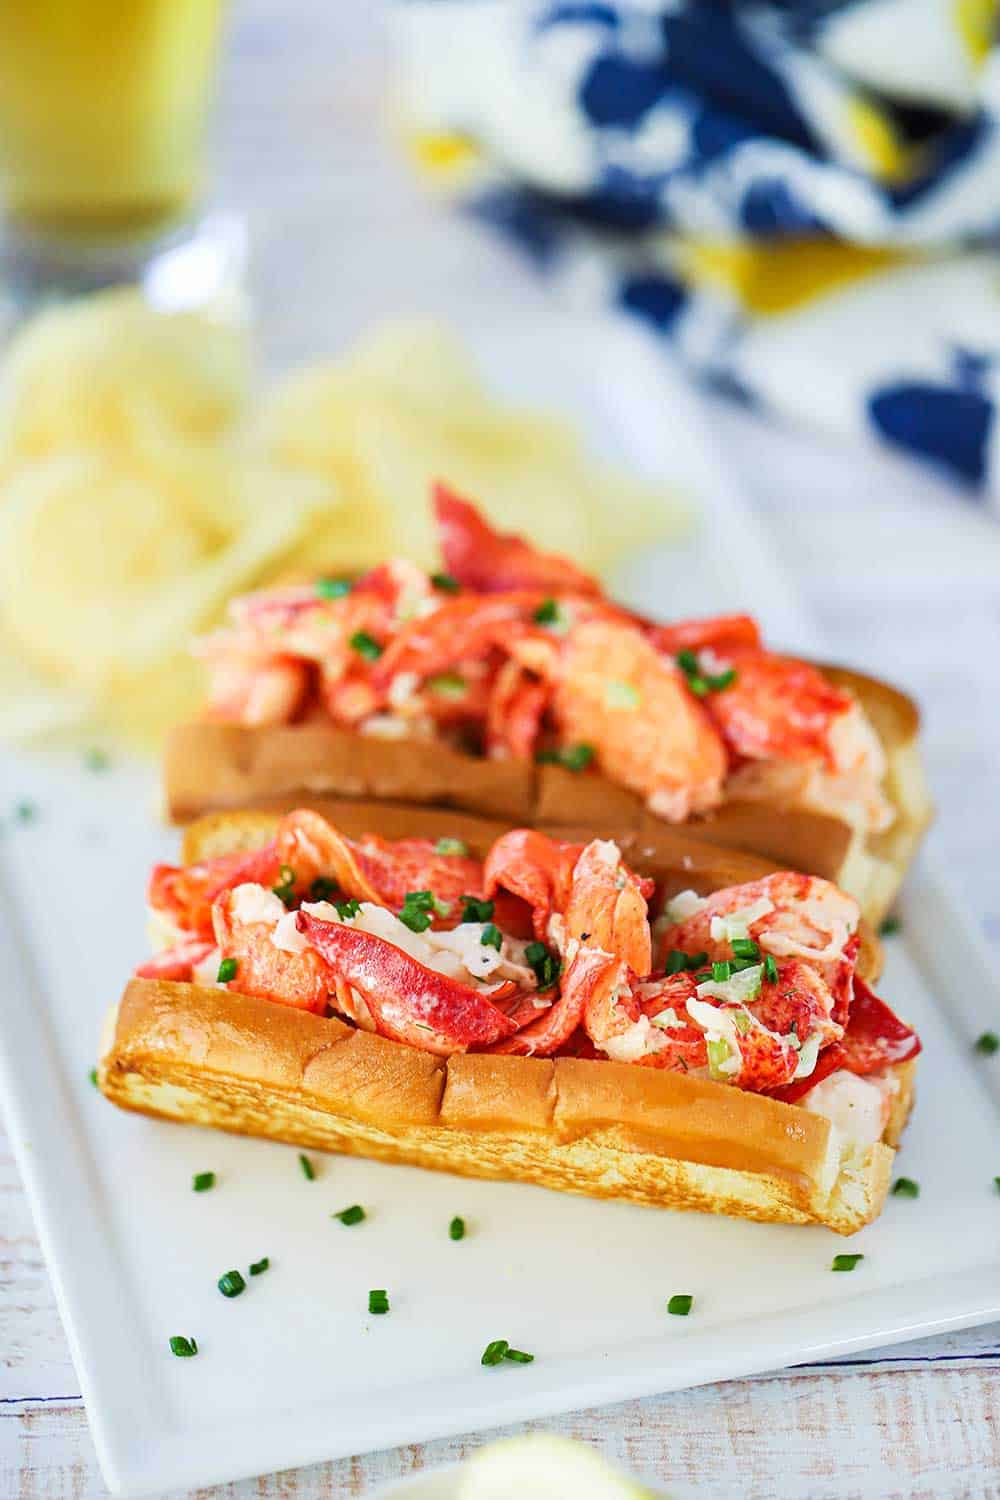 Two lobster rolls sitting on a rectangular white plate with snipped chives sprinkled over the top.